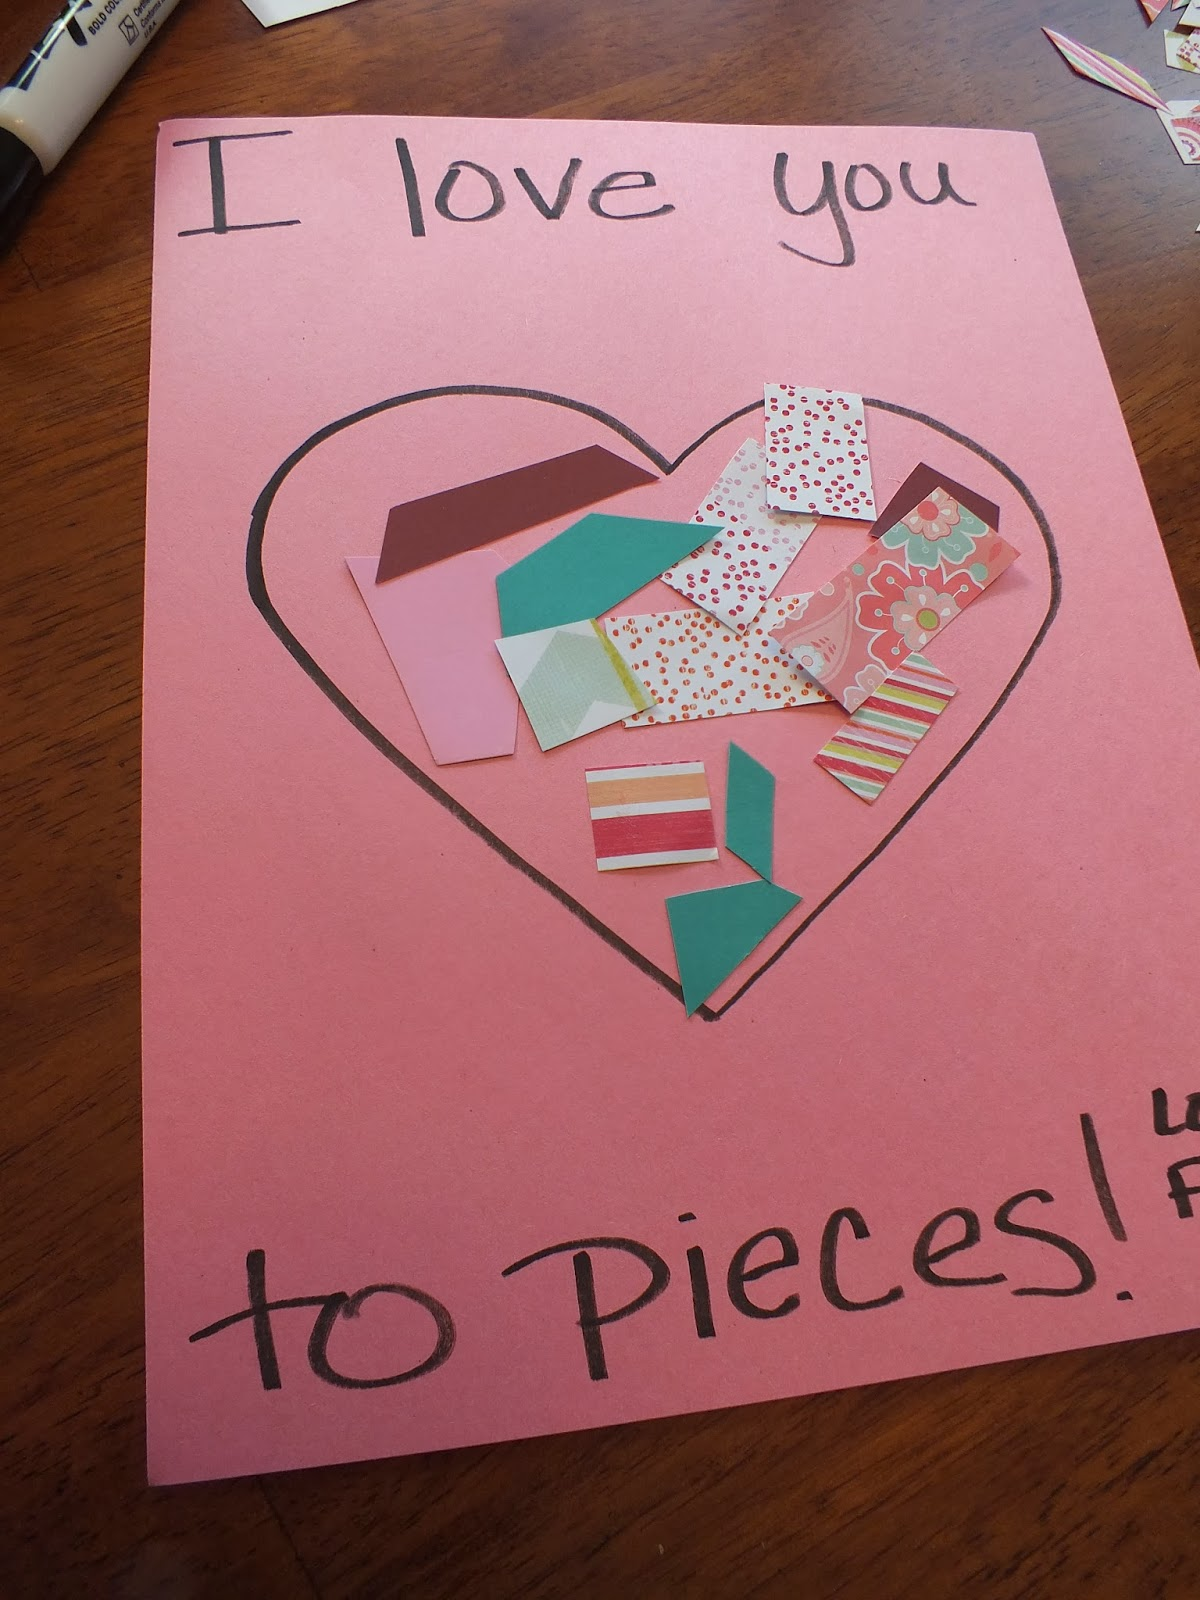 i love you to pieces craft you to pieces craft images 7793